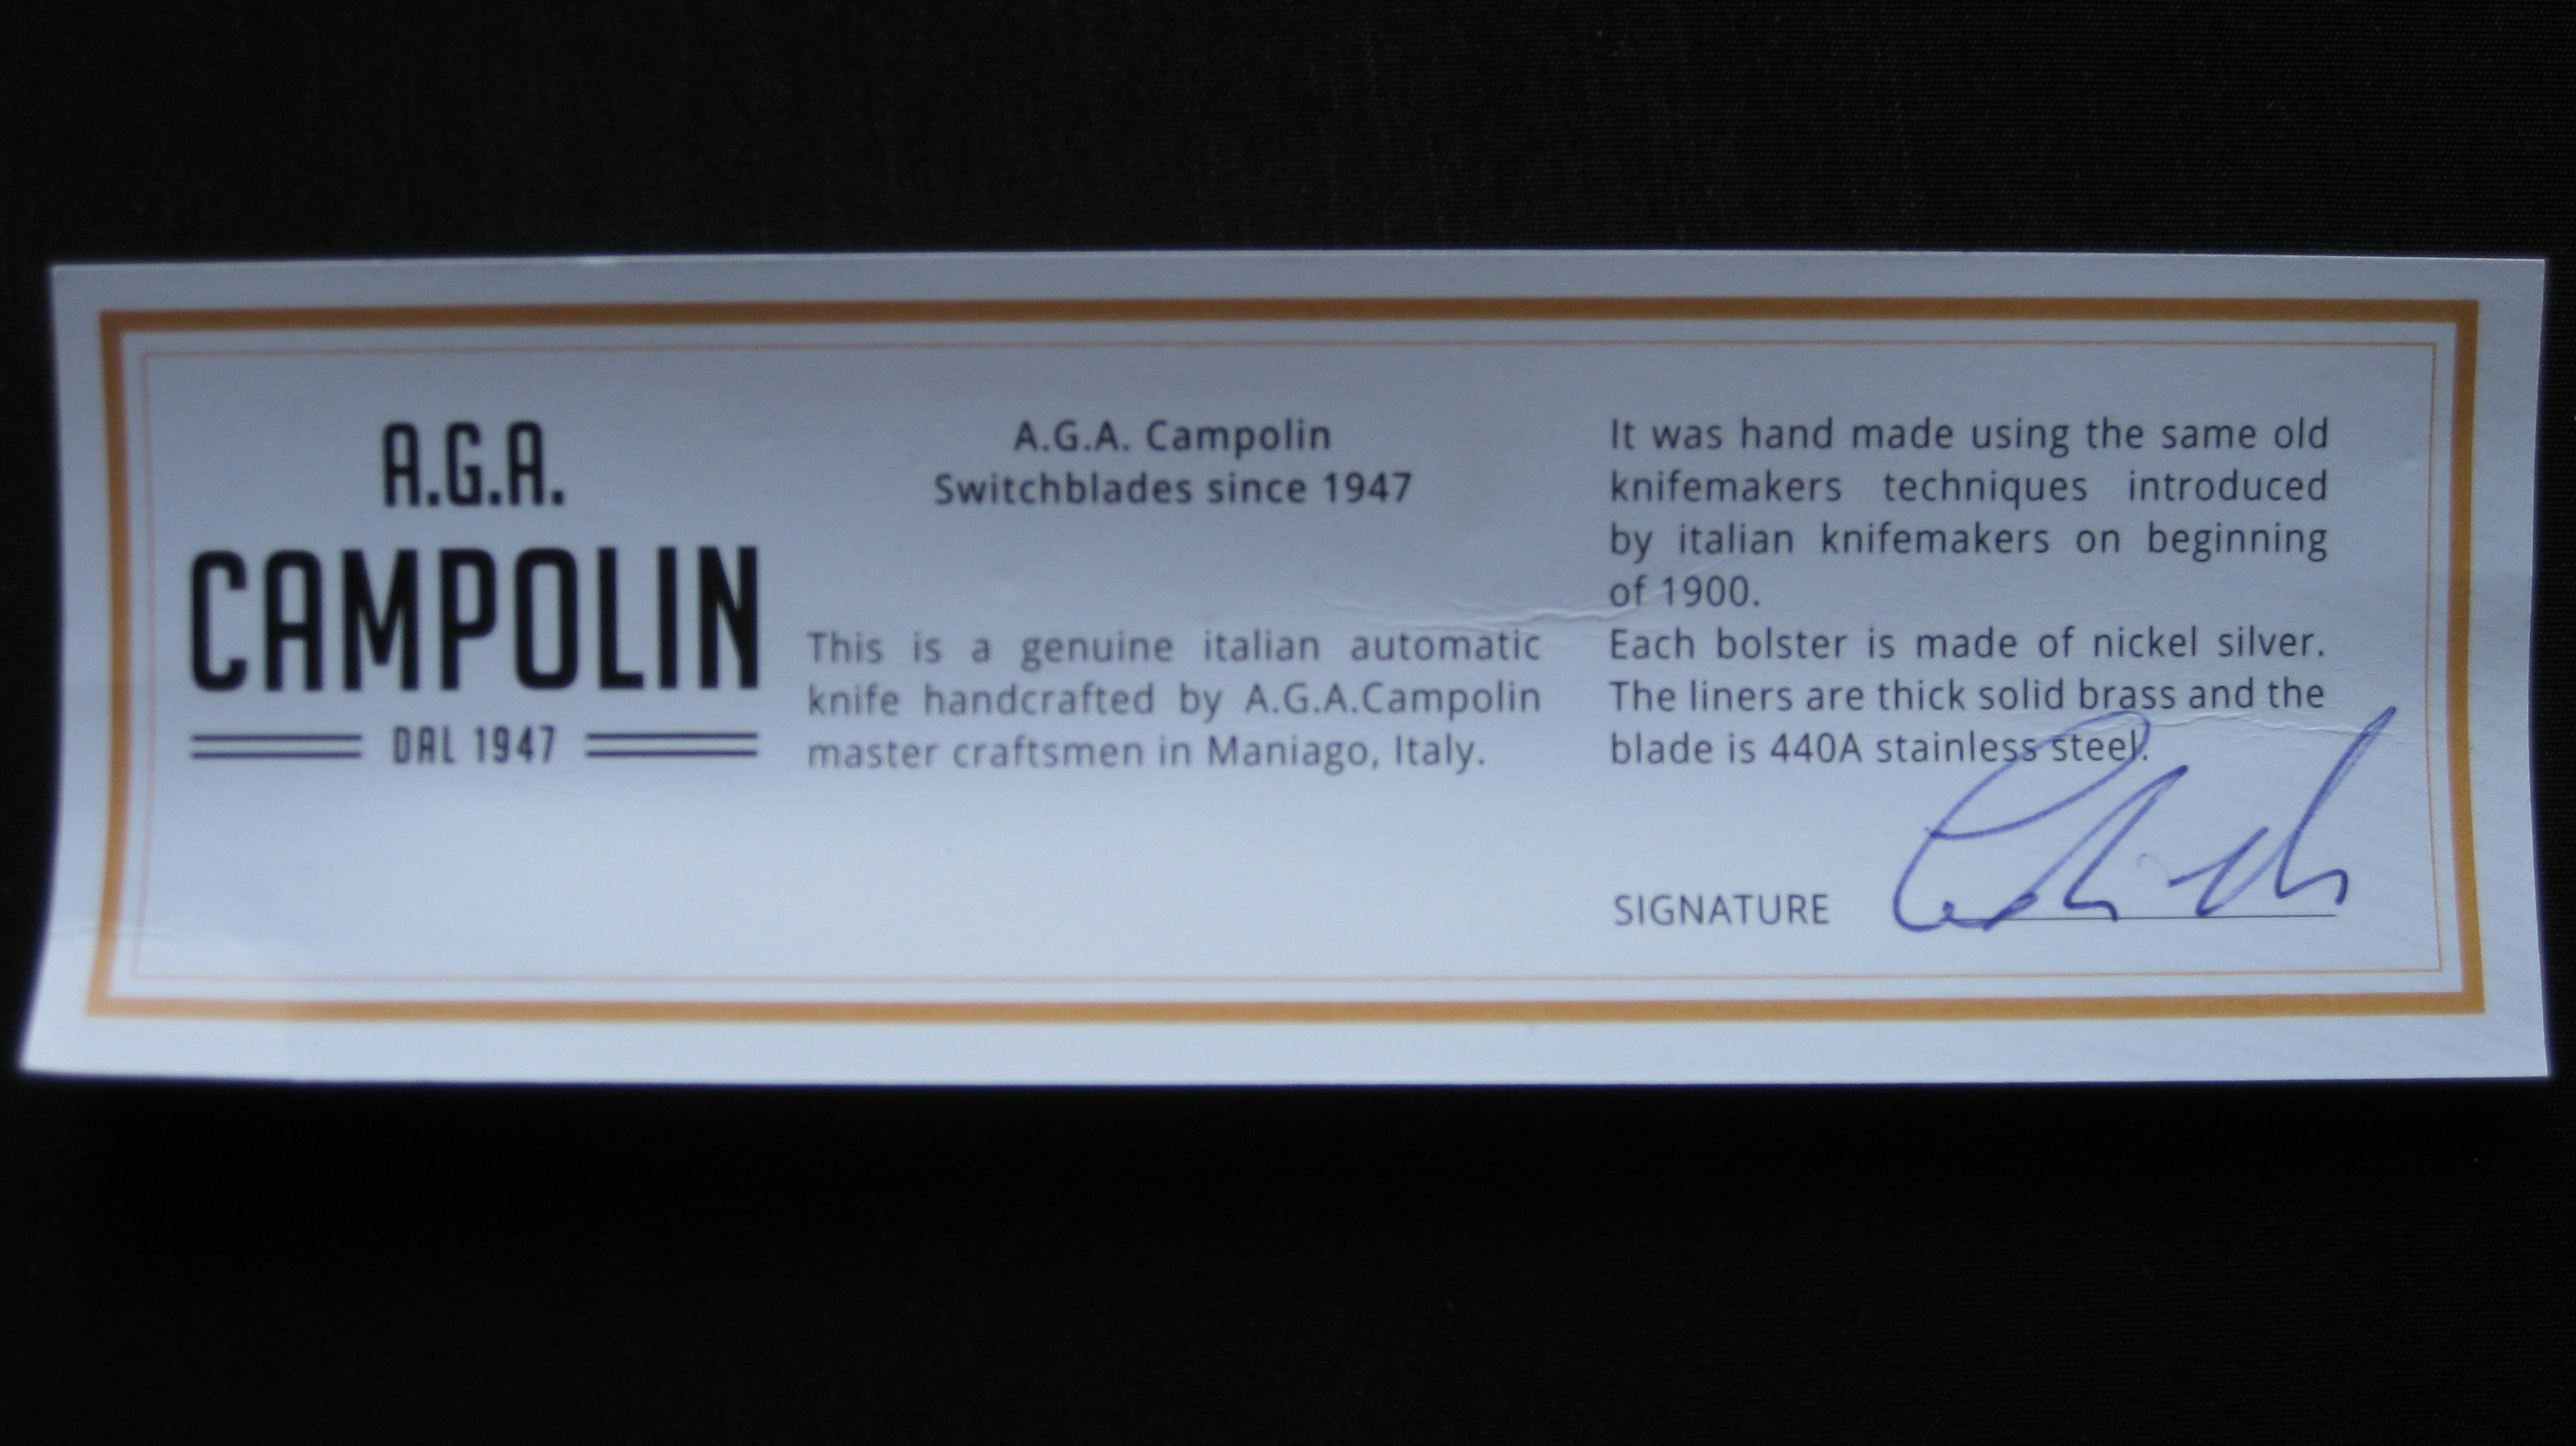 certificate of authenticity AGA Campolin